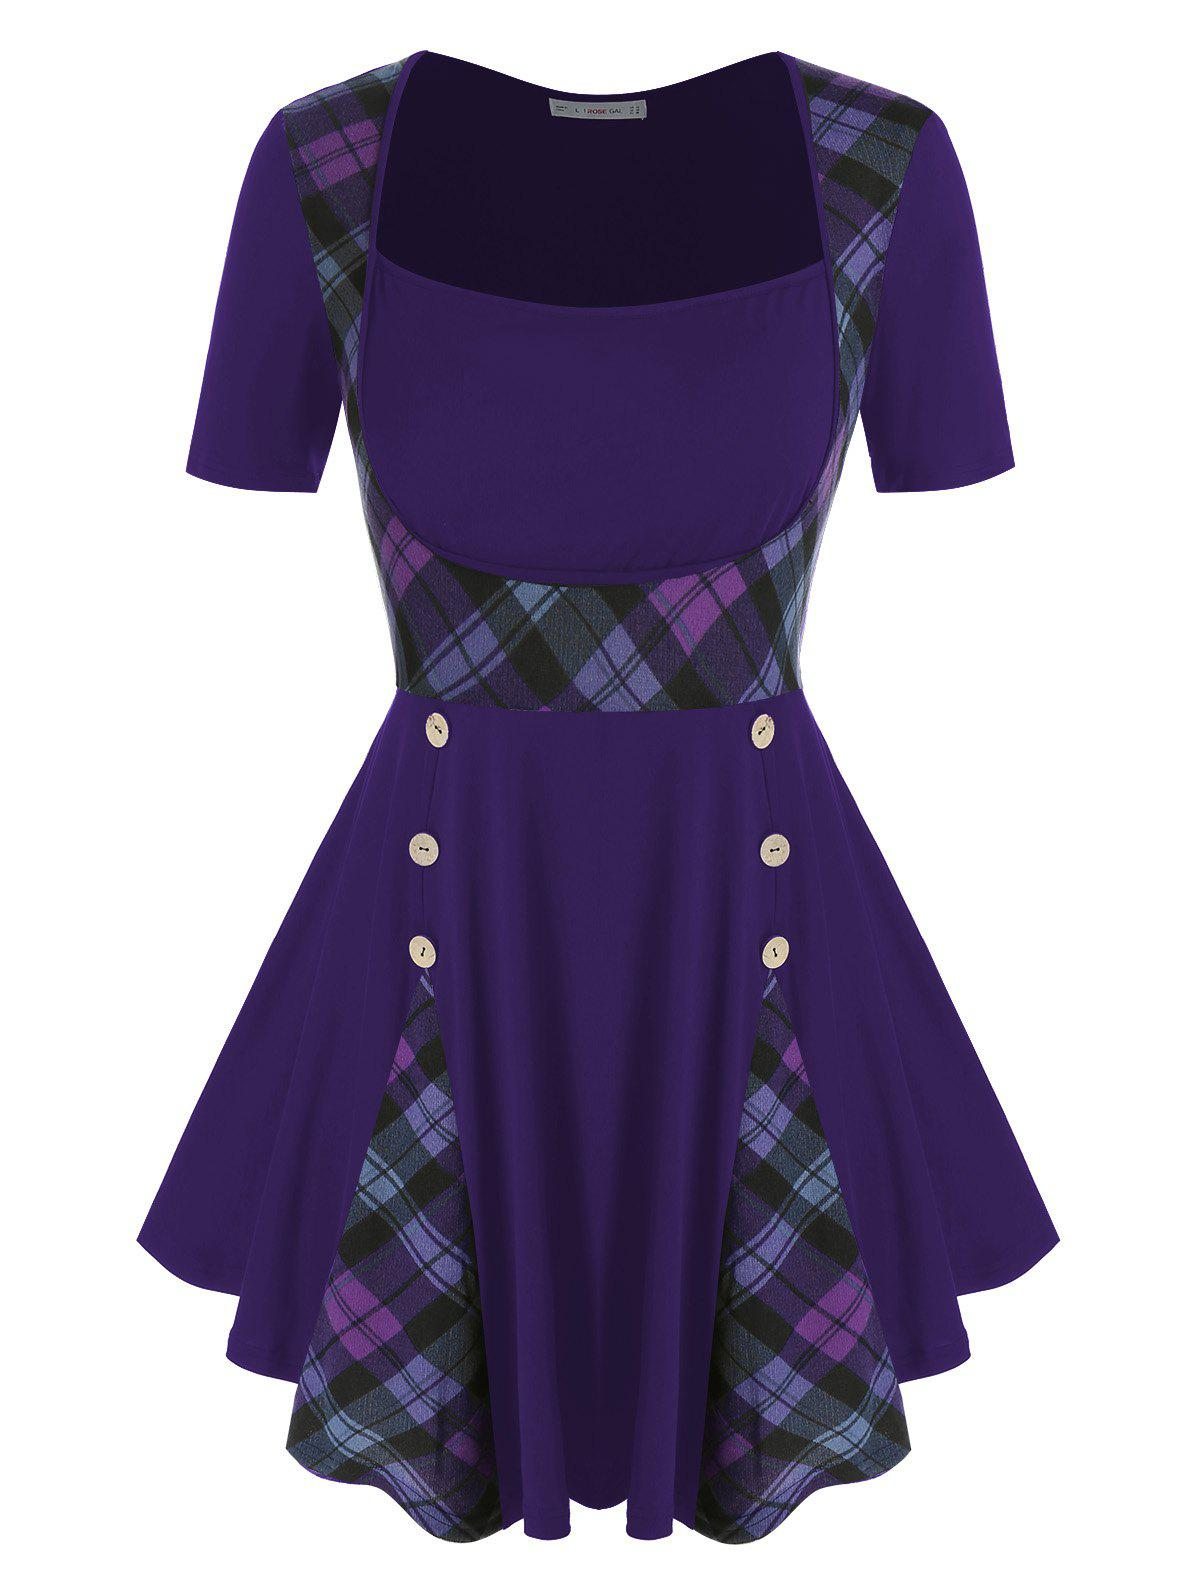 Plus Size Plaid Buttoned Skirted T Shirt - DARK ORCHID 5X